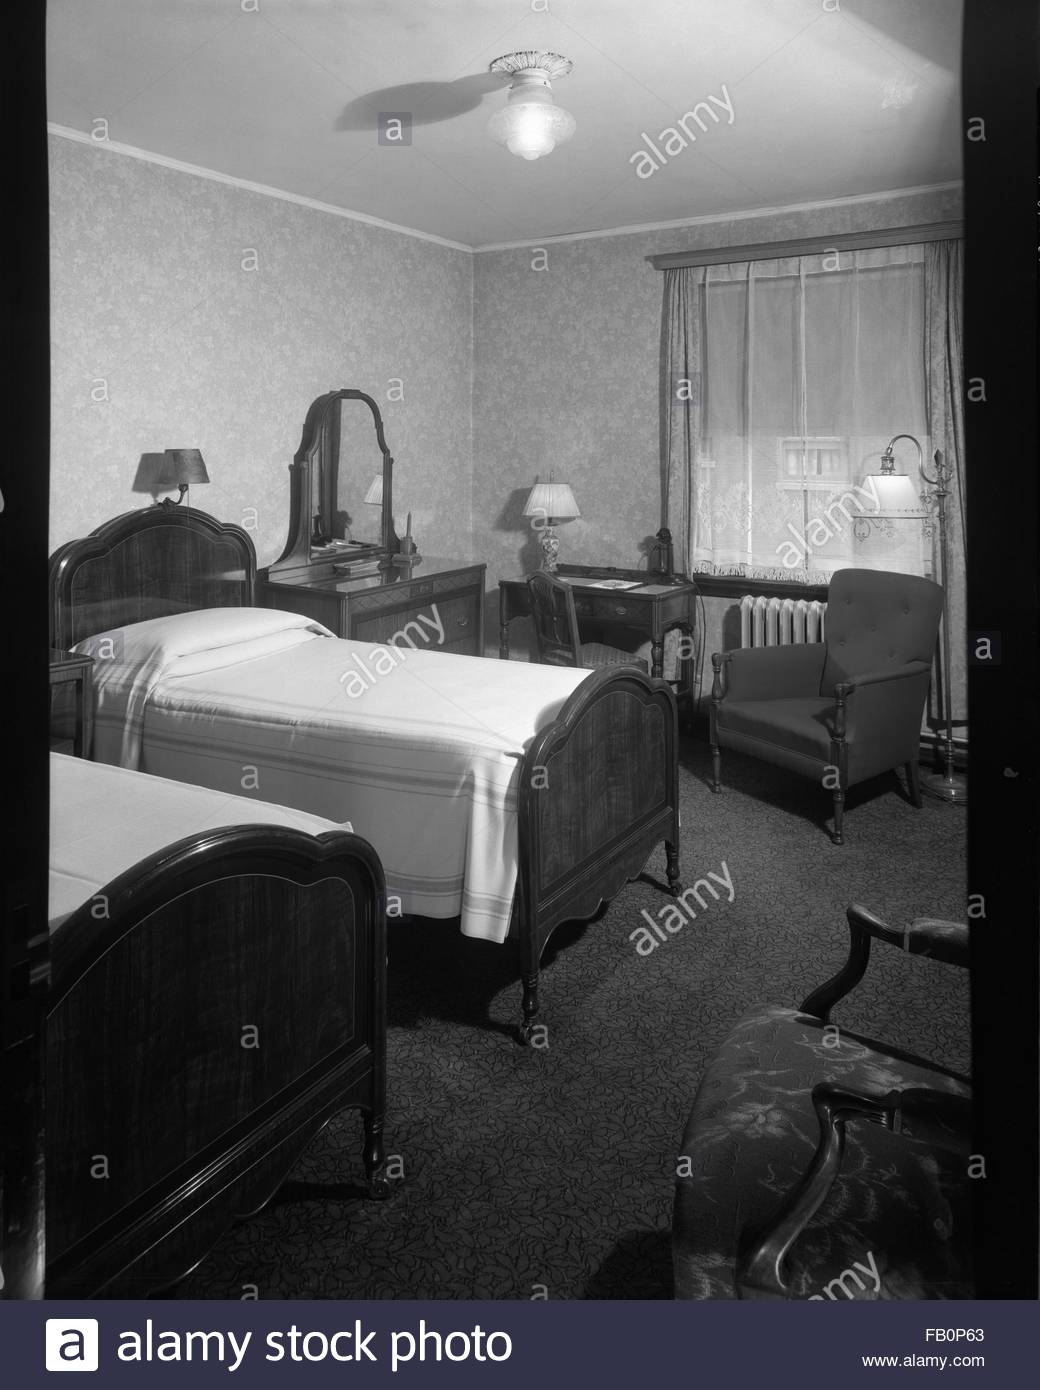 Stevens Hotel rooms in Chicago (Ill.), 1935 Apr.- May. Interior, room with two beds, a small writing desk and chairs. - Stock Image